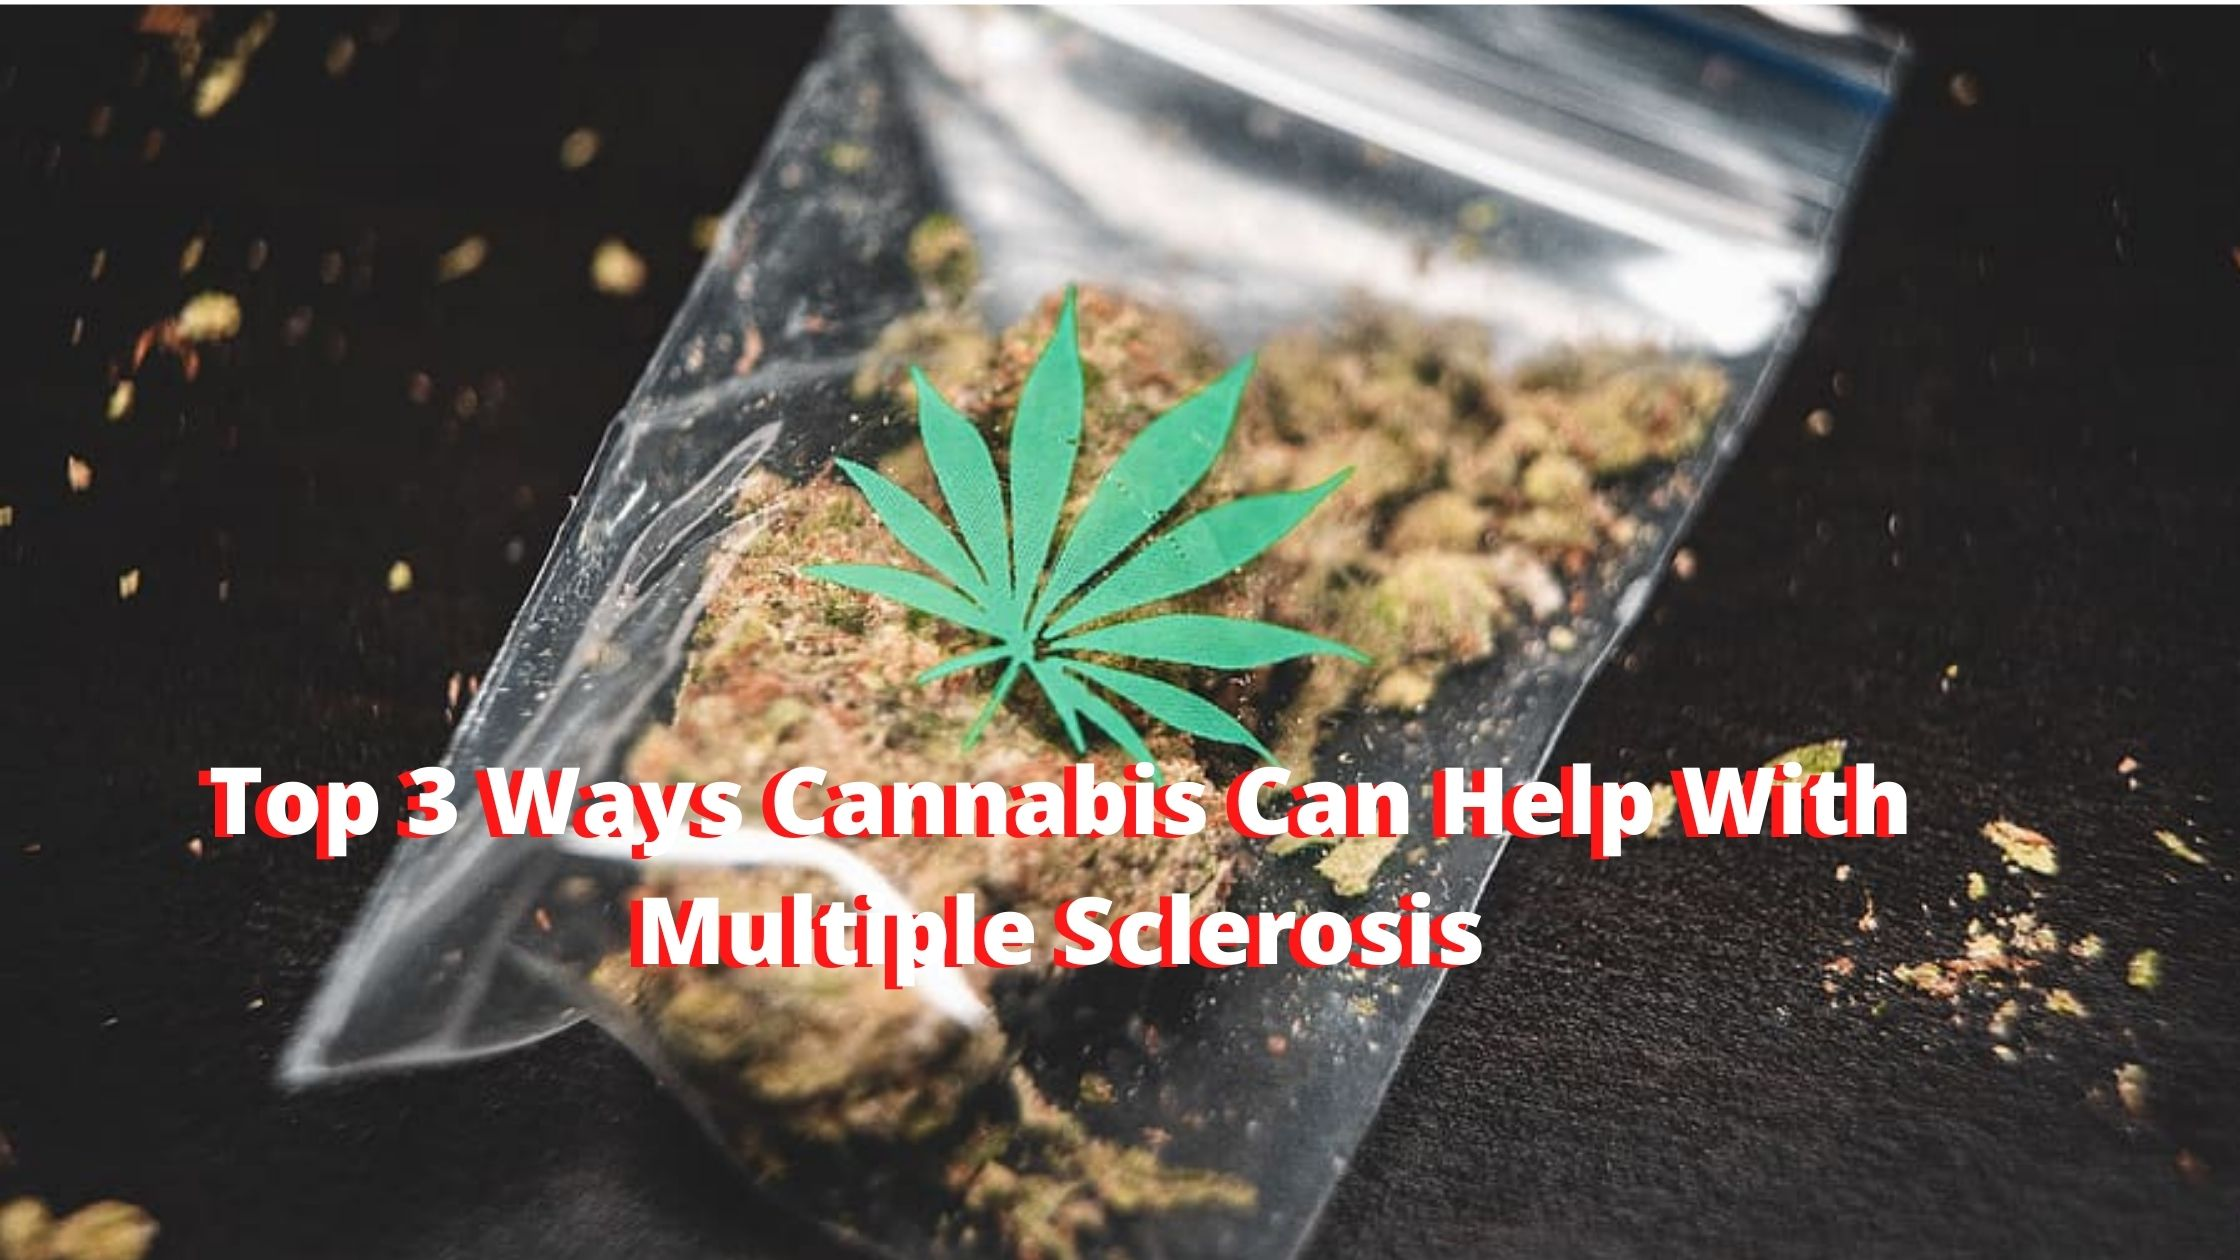 Top 3 Ways Cannabis Can Help With Multiple Sclerosis